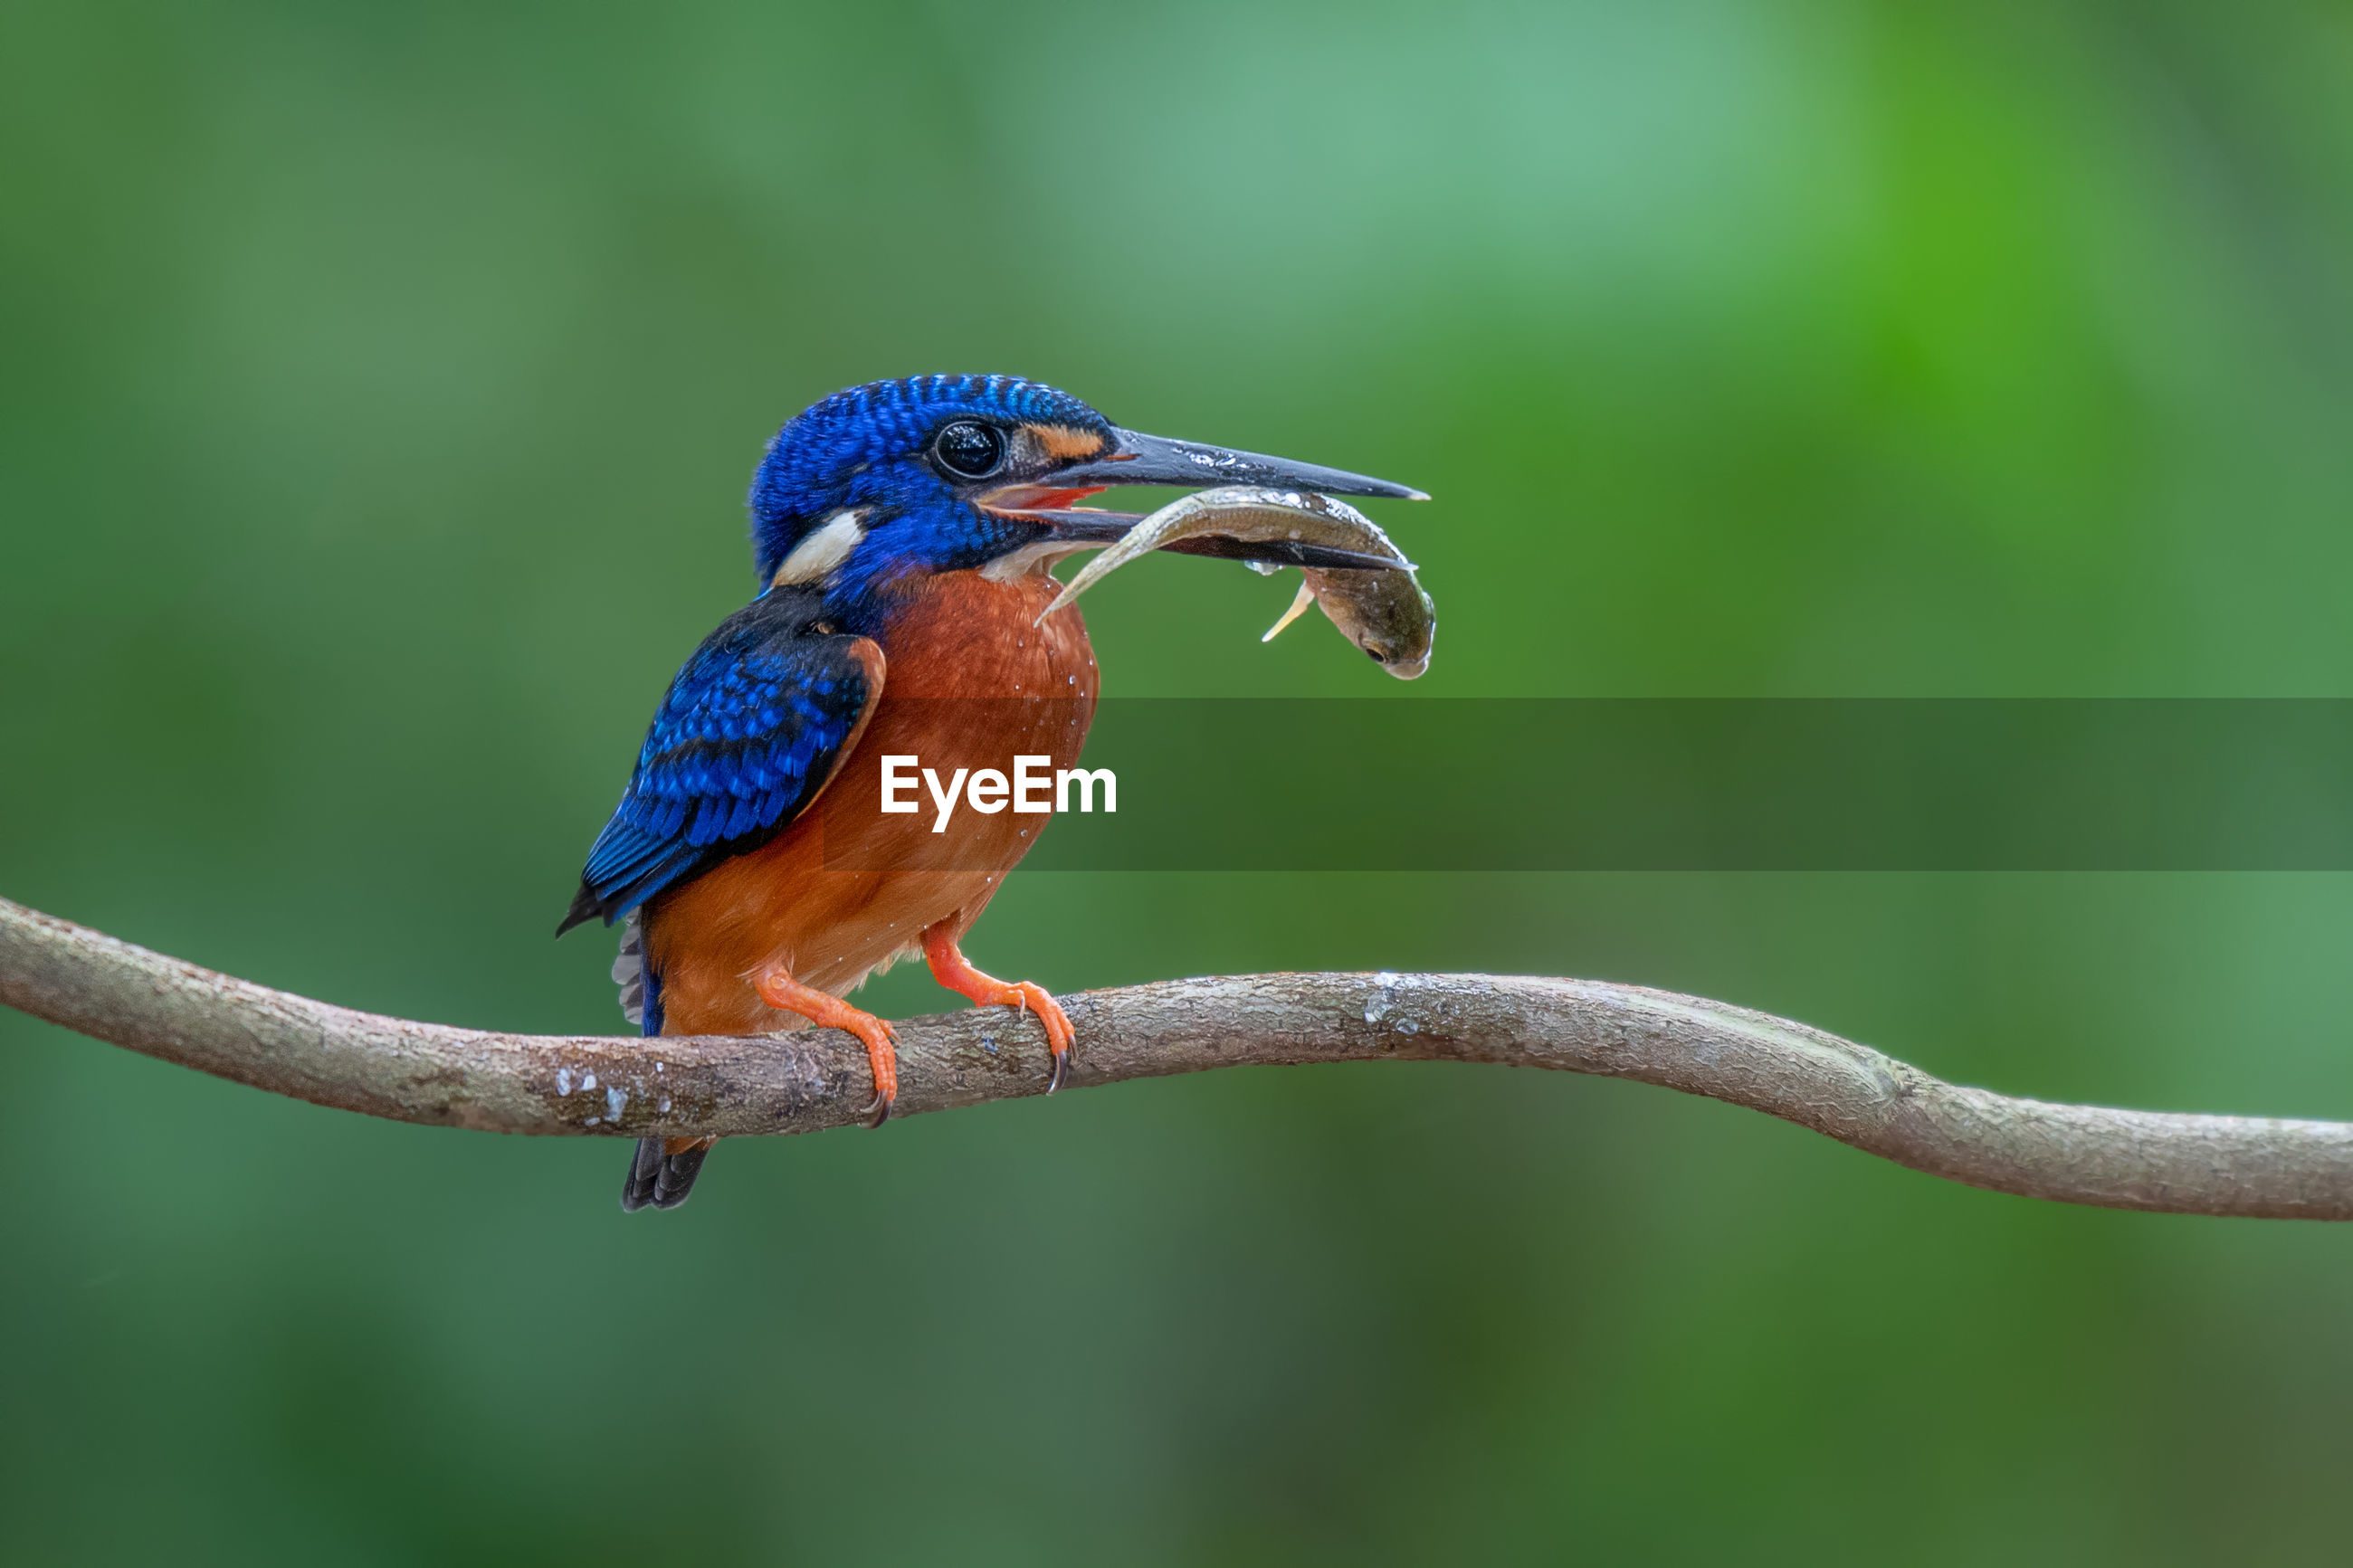 Close-up of kingfisher with fish in beak perching on wood